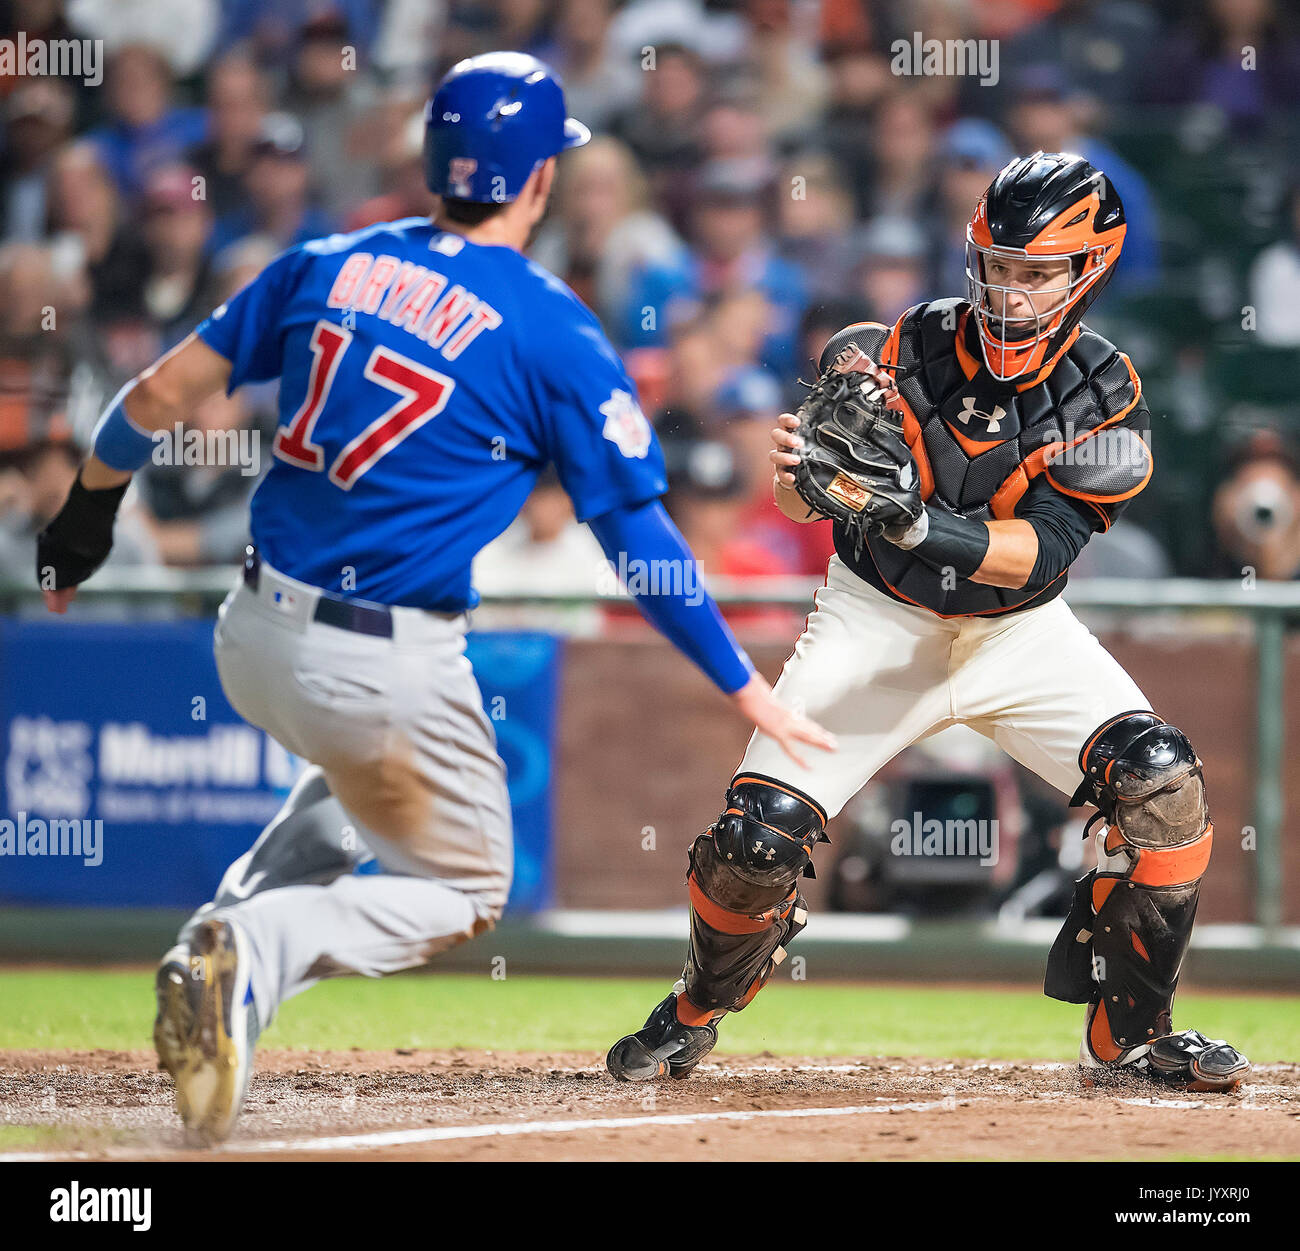 August 07, 2017: Chicago Cubs third baseman Kris Bryant (17) tagged out at home plate by Giants catcher Buster Posey (28) in the seventh inning, during a MLB game between the Chicago Cubs and the San Francisco Giants at AT&T Park in San Francisco, California. Valerie Shoaps/CSM - Stock Image